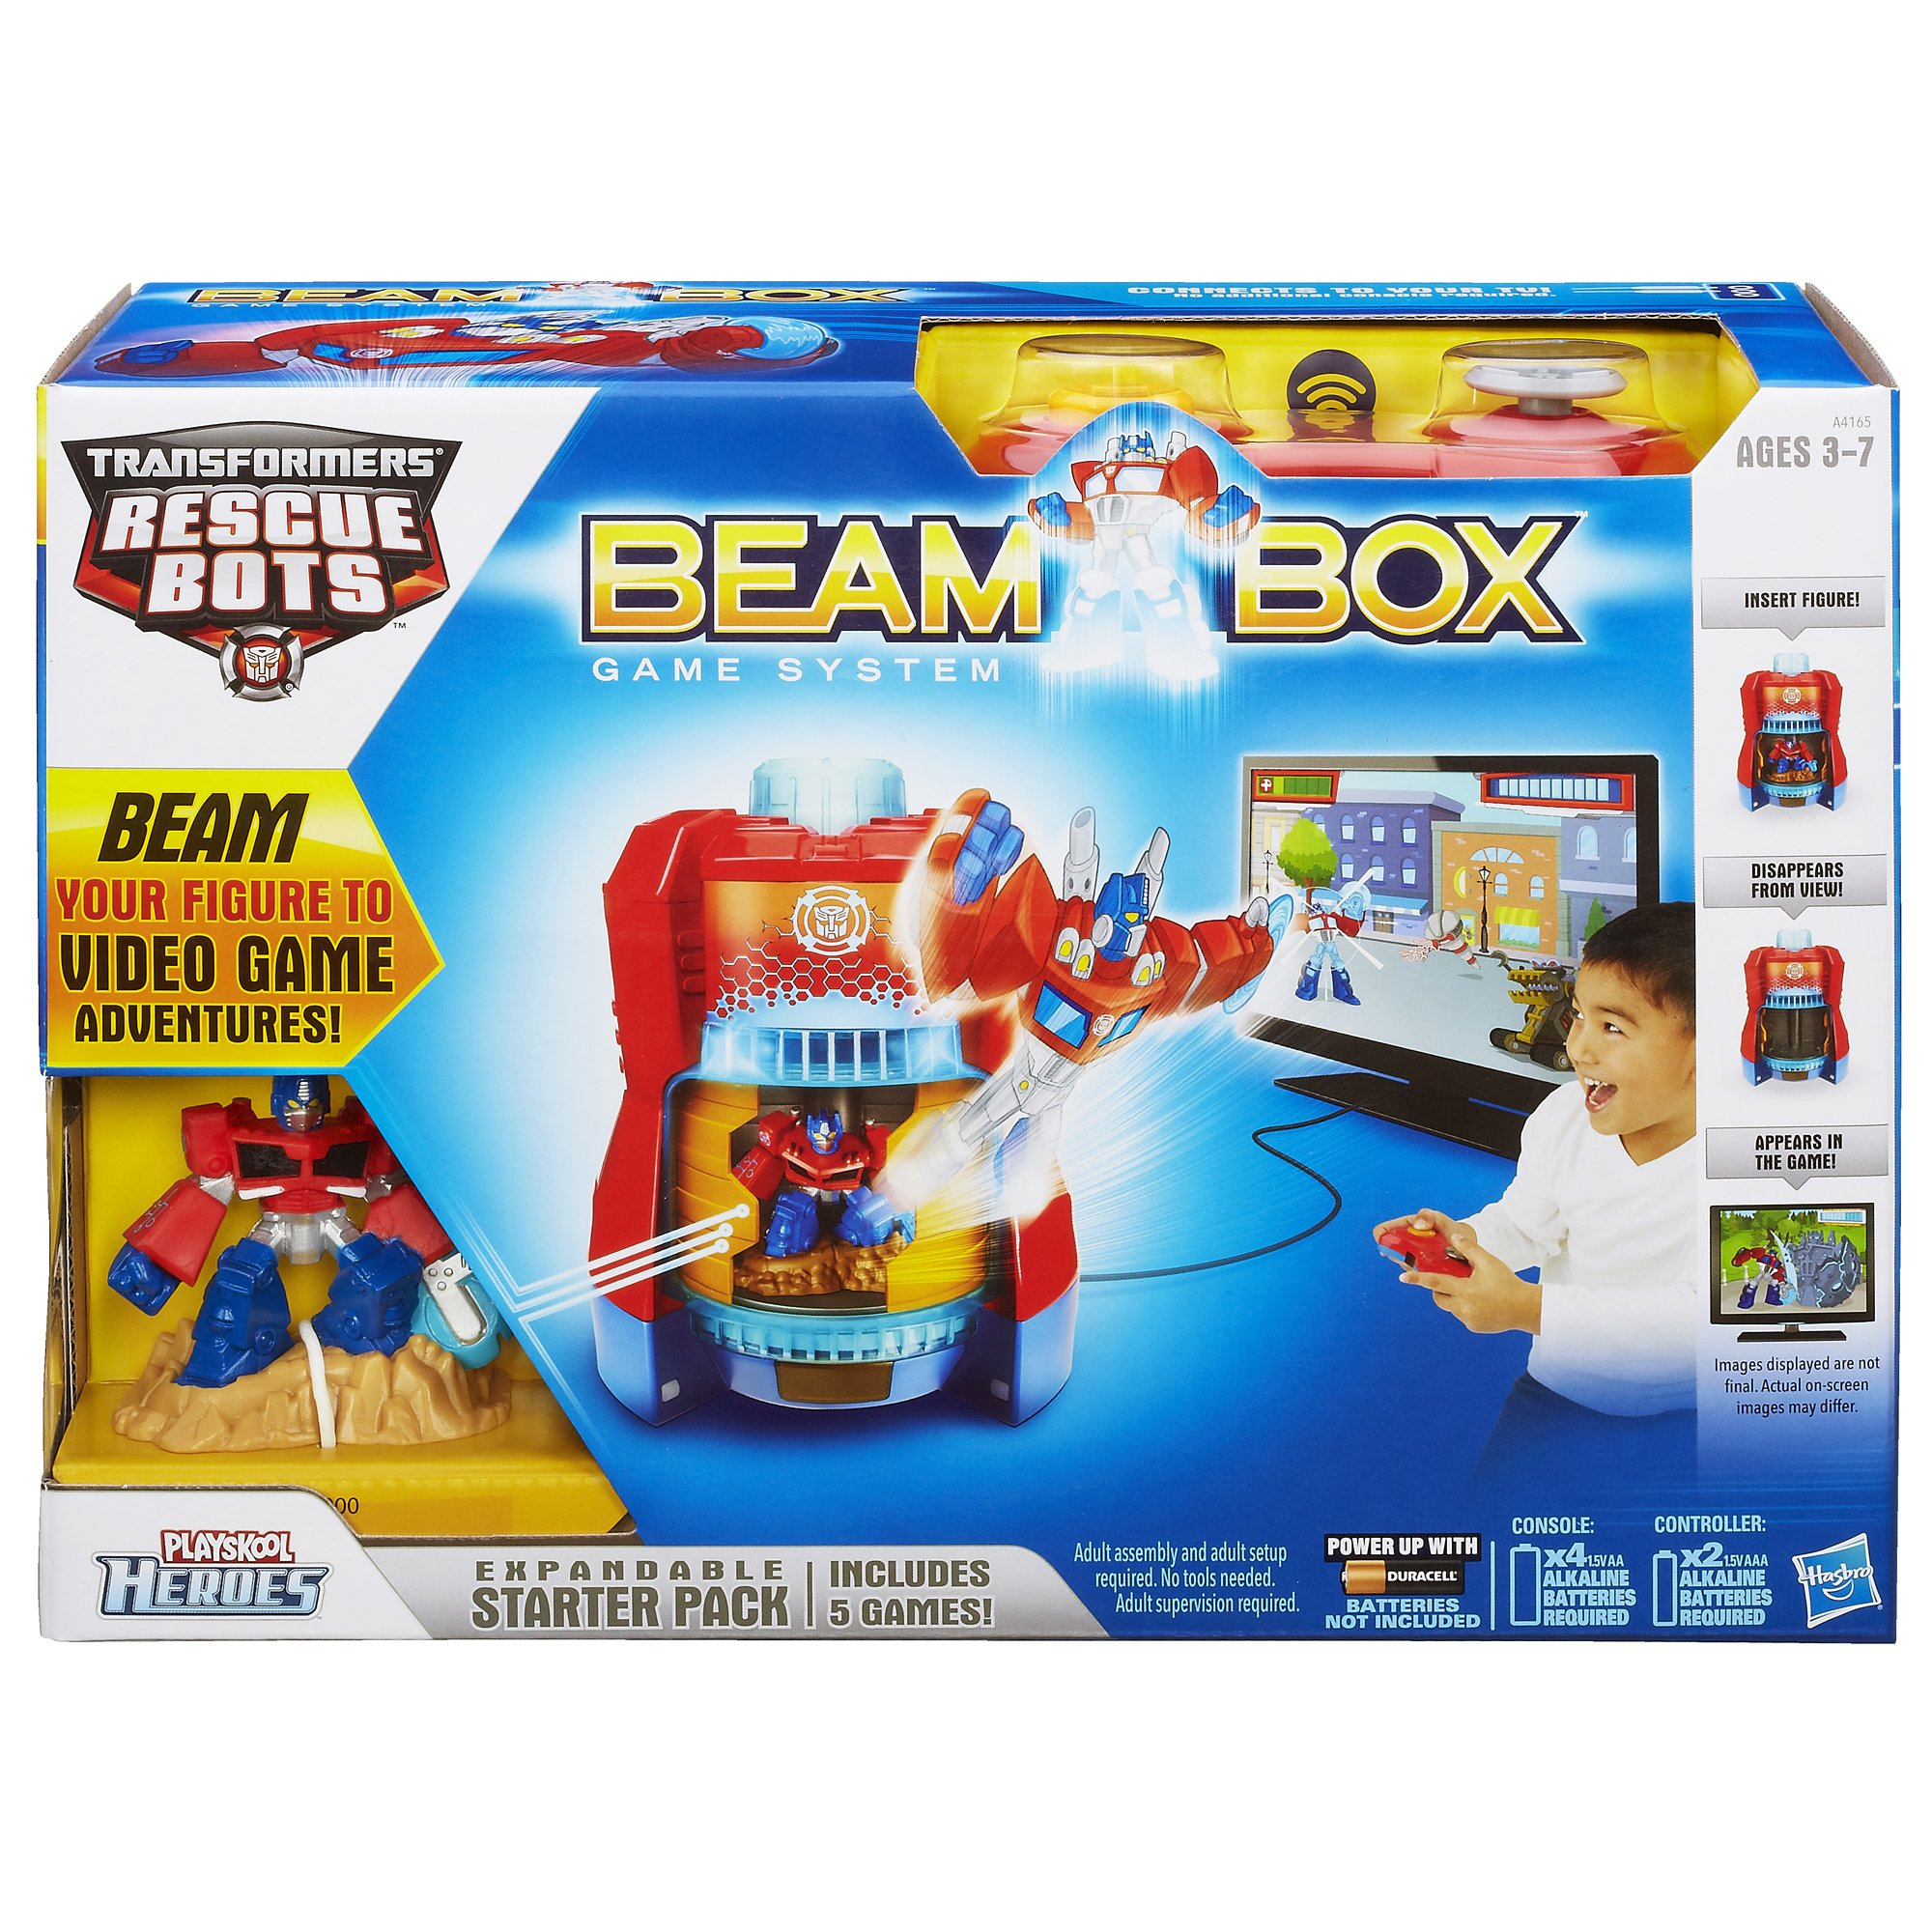 Playskool Heroes Transformers Rescue Bots Beam Box Game System by Transformers (Image #2)